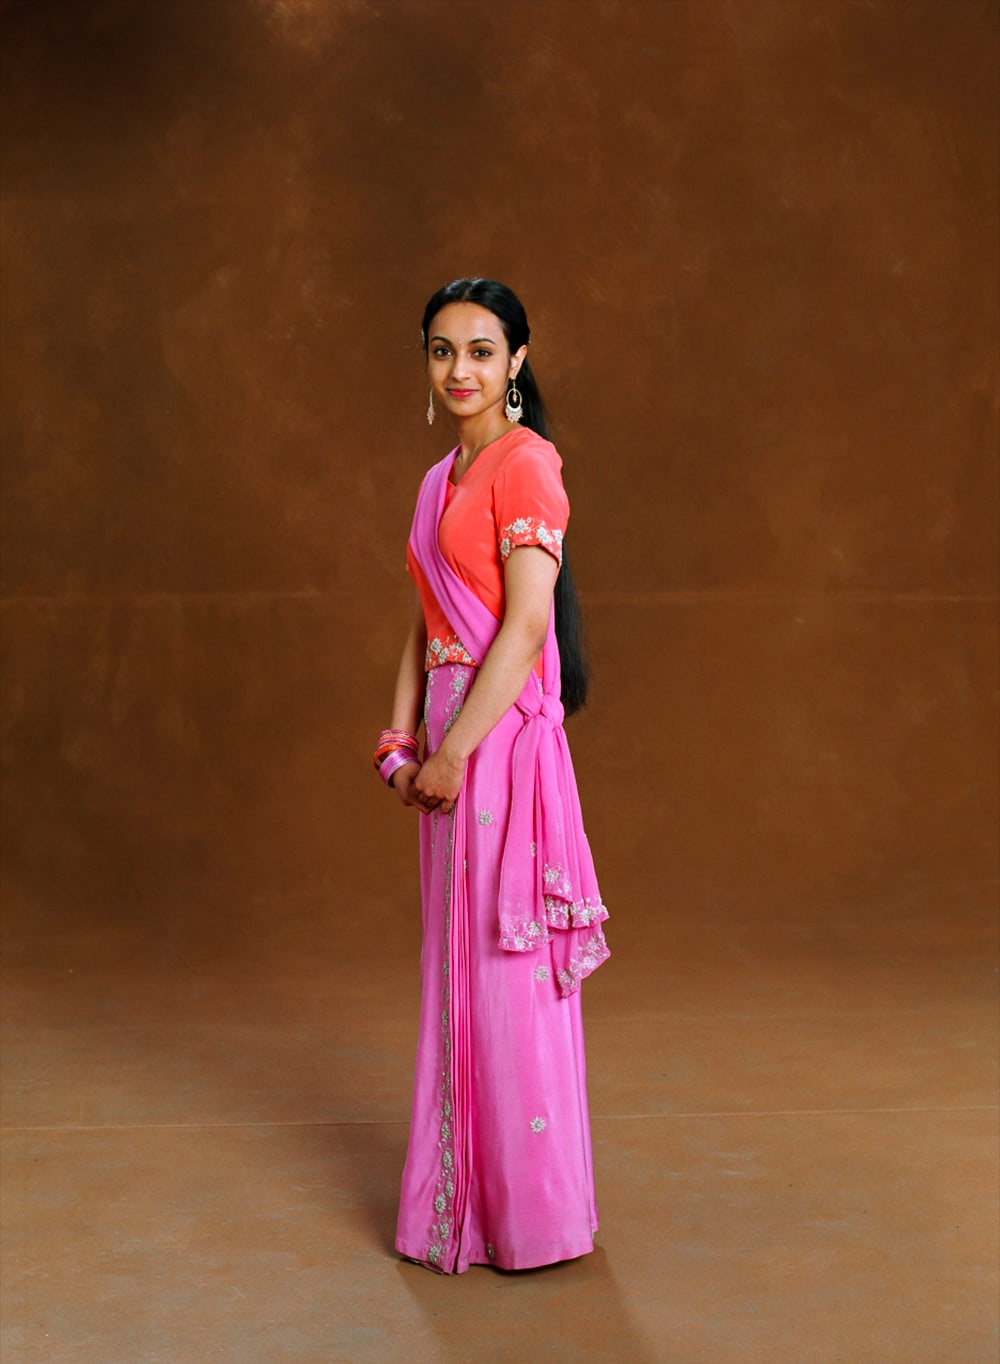 Parvati Patil Yule Ball portrait